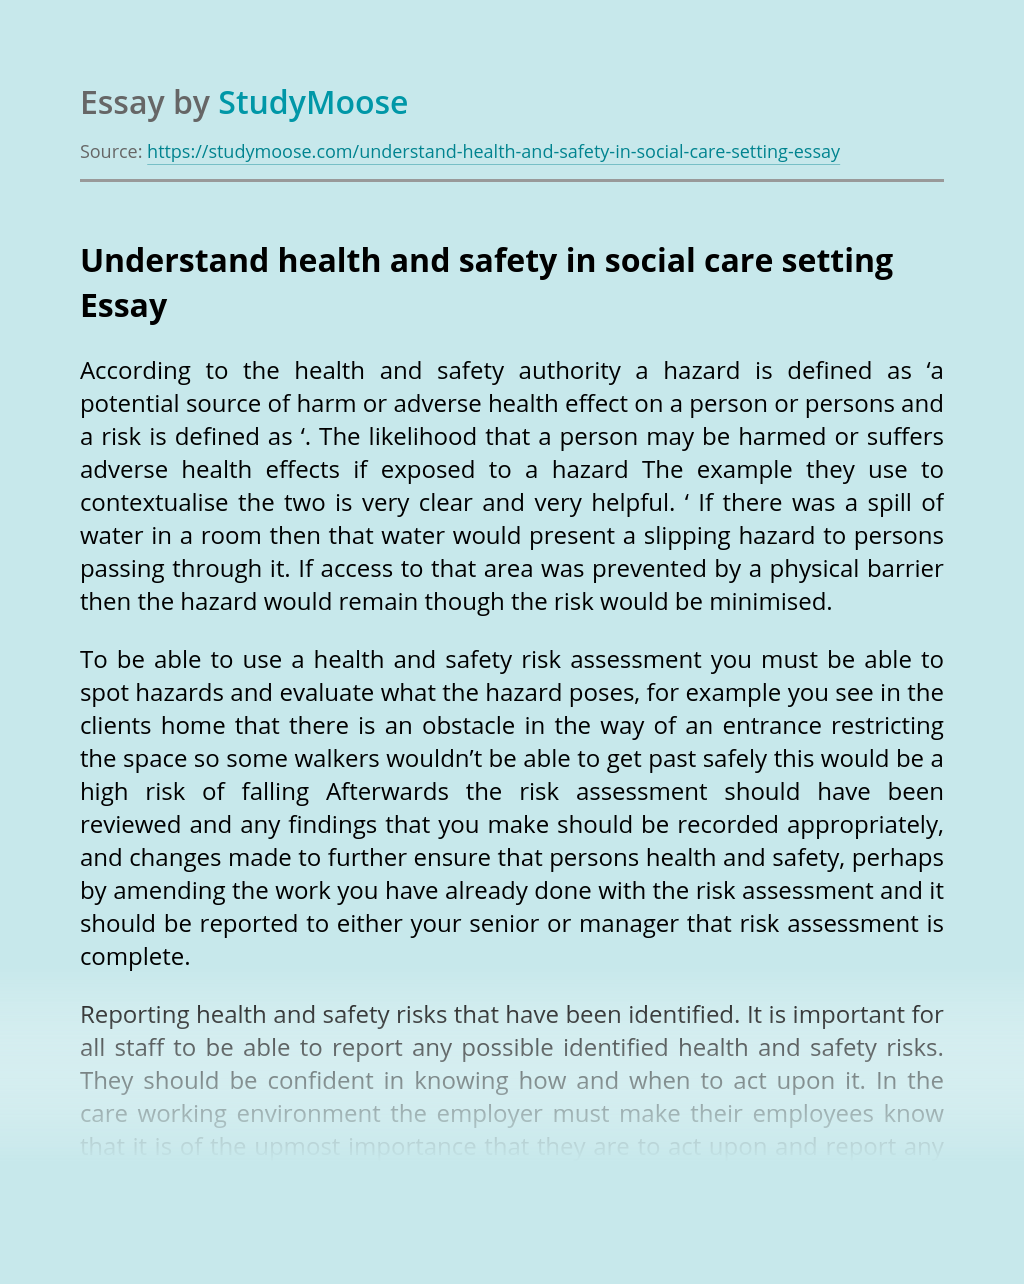 Understand health and safety in social care setting